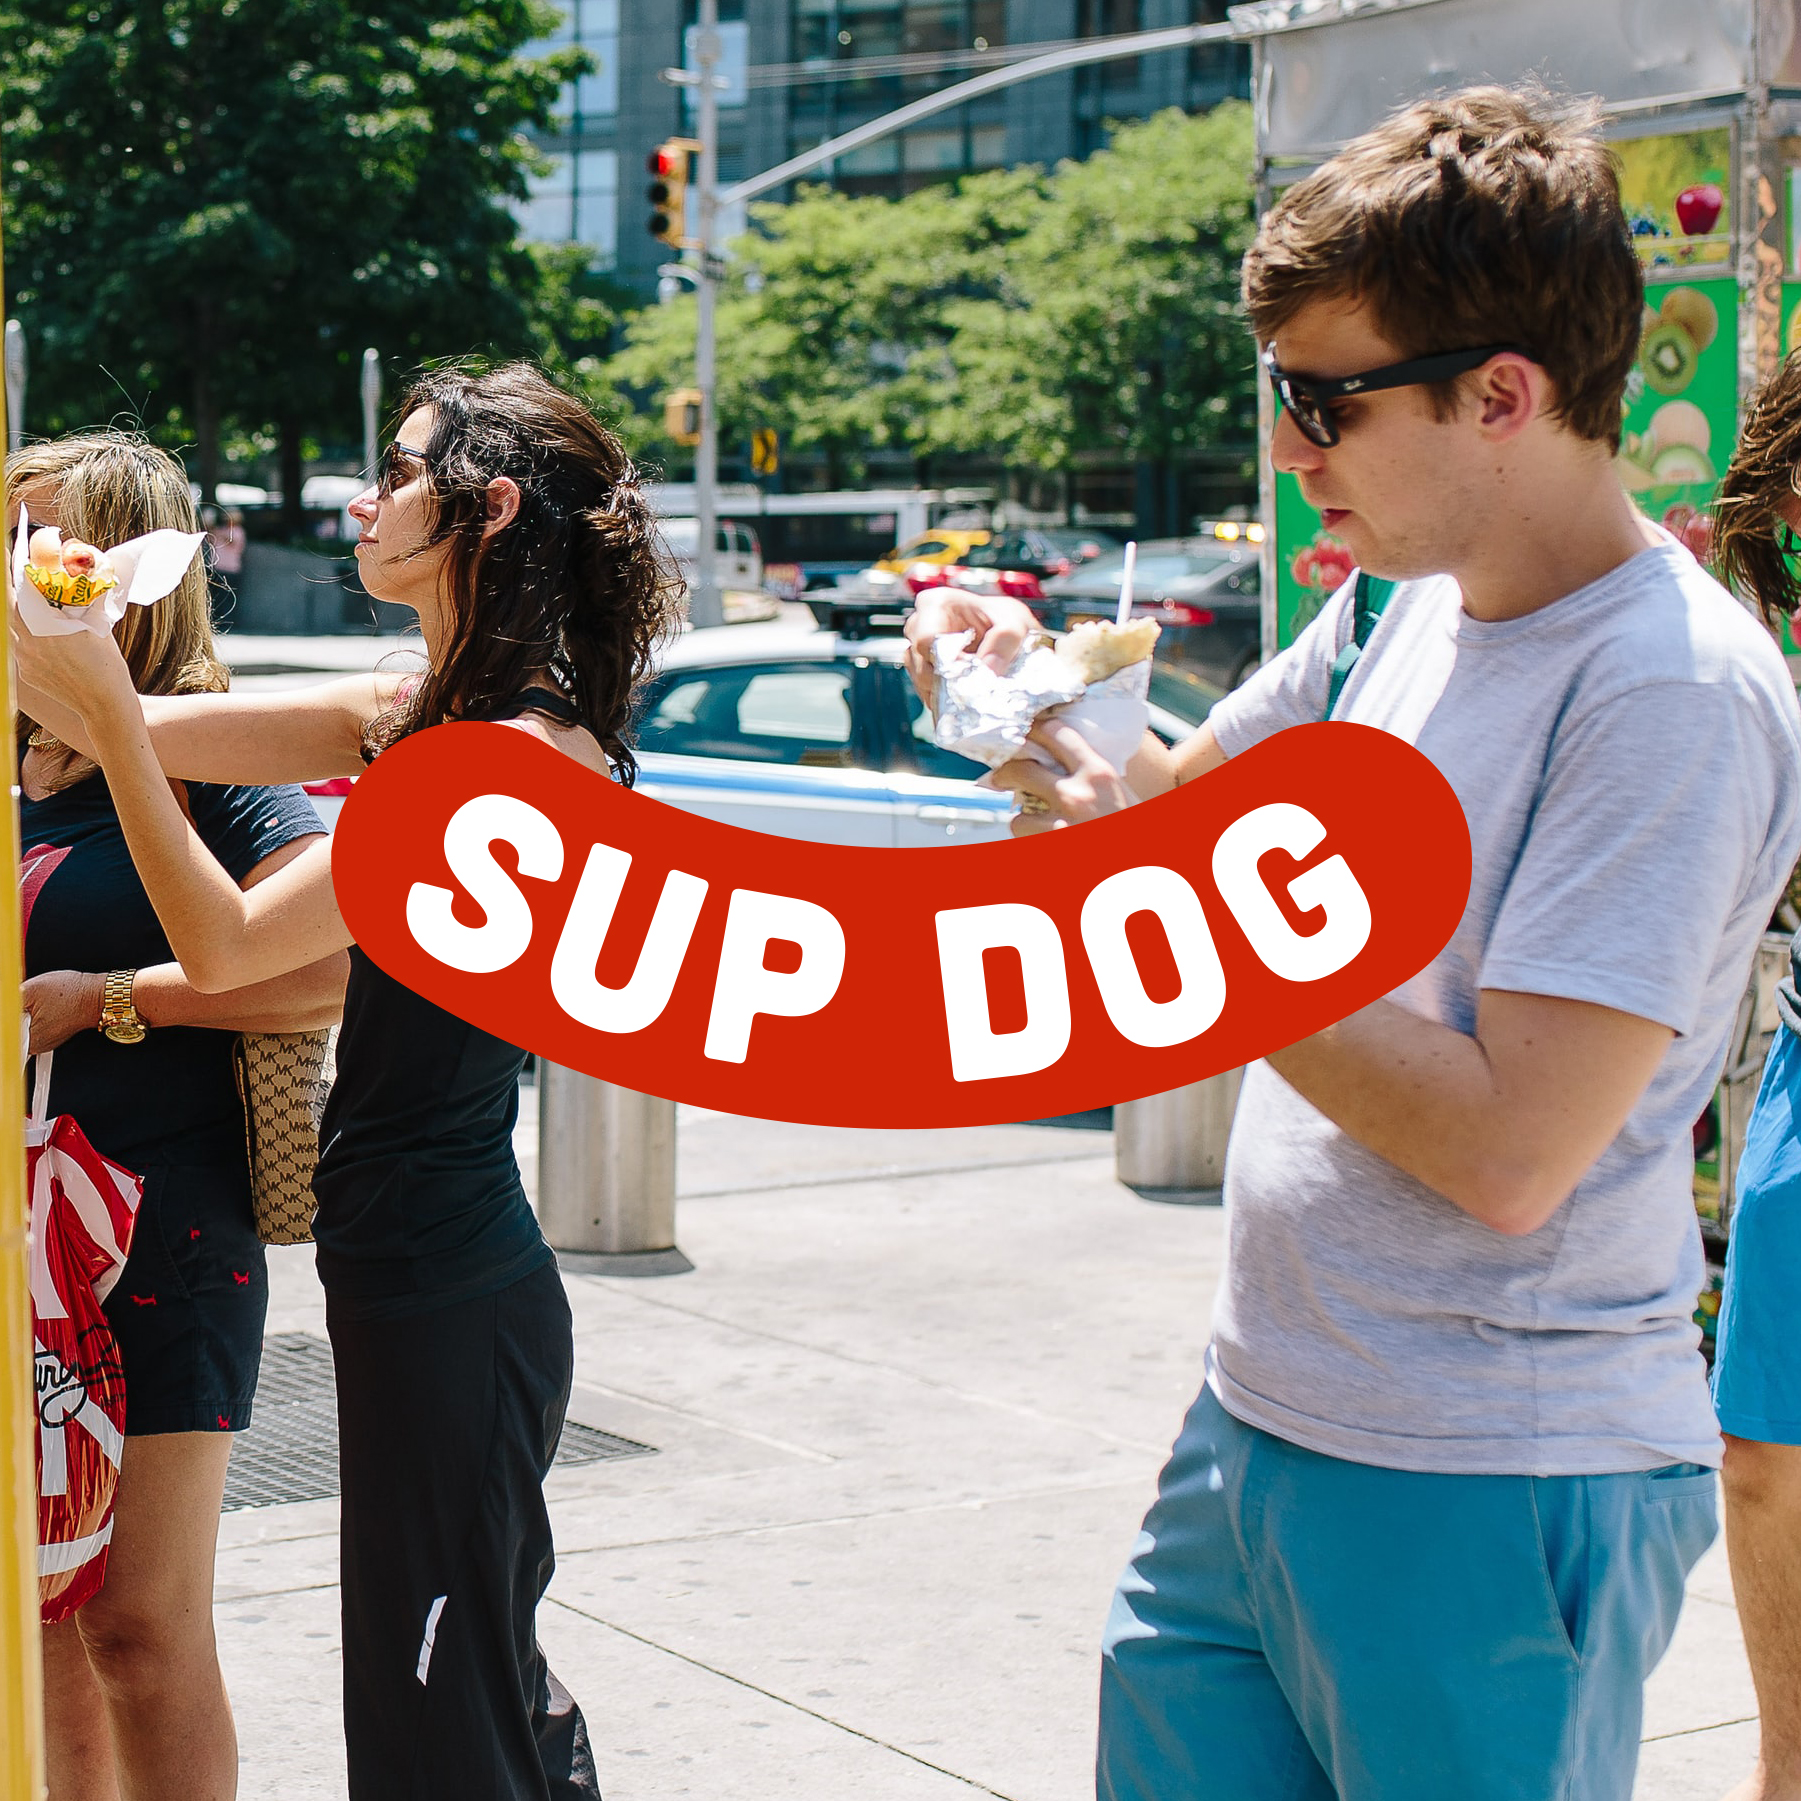 Sup Dog Food Truck with line of people.